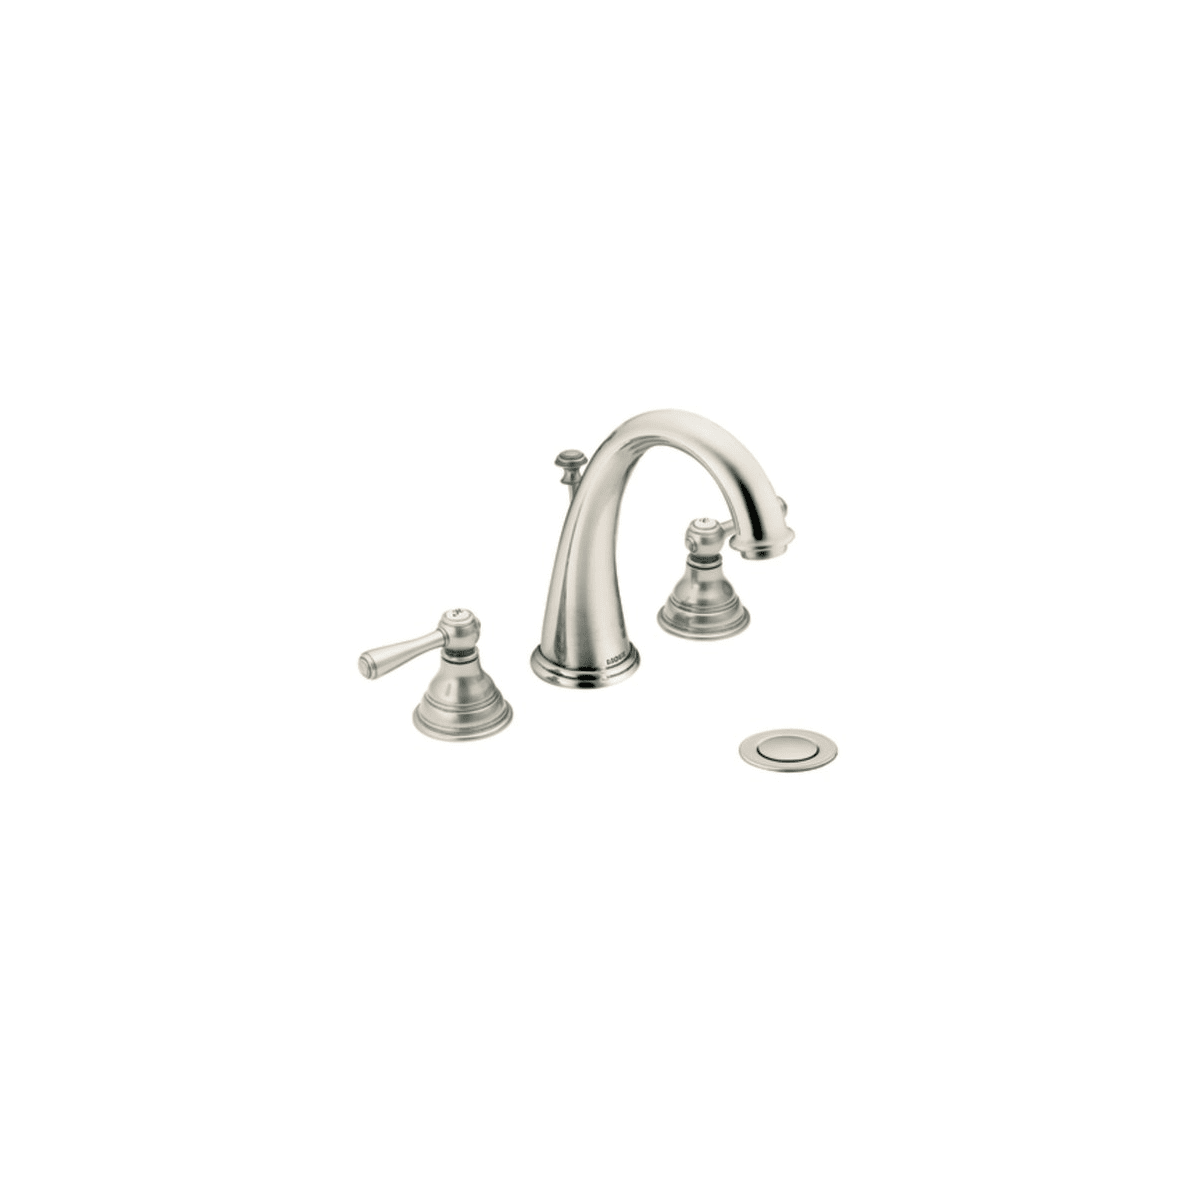 Moen Kingsley Bathroom Faucet Moen T6125 9000